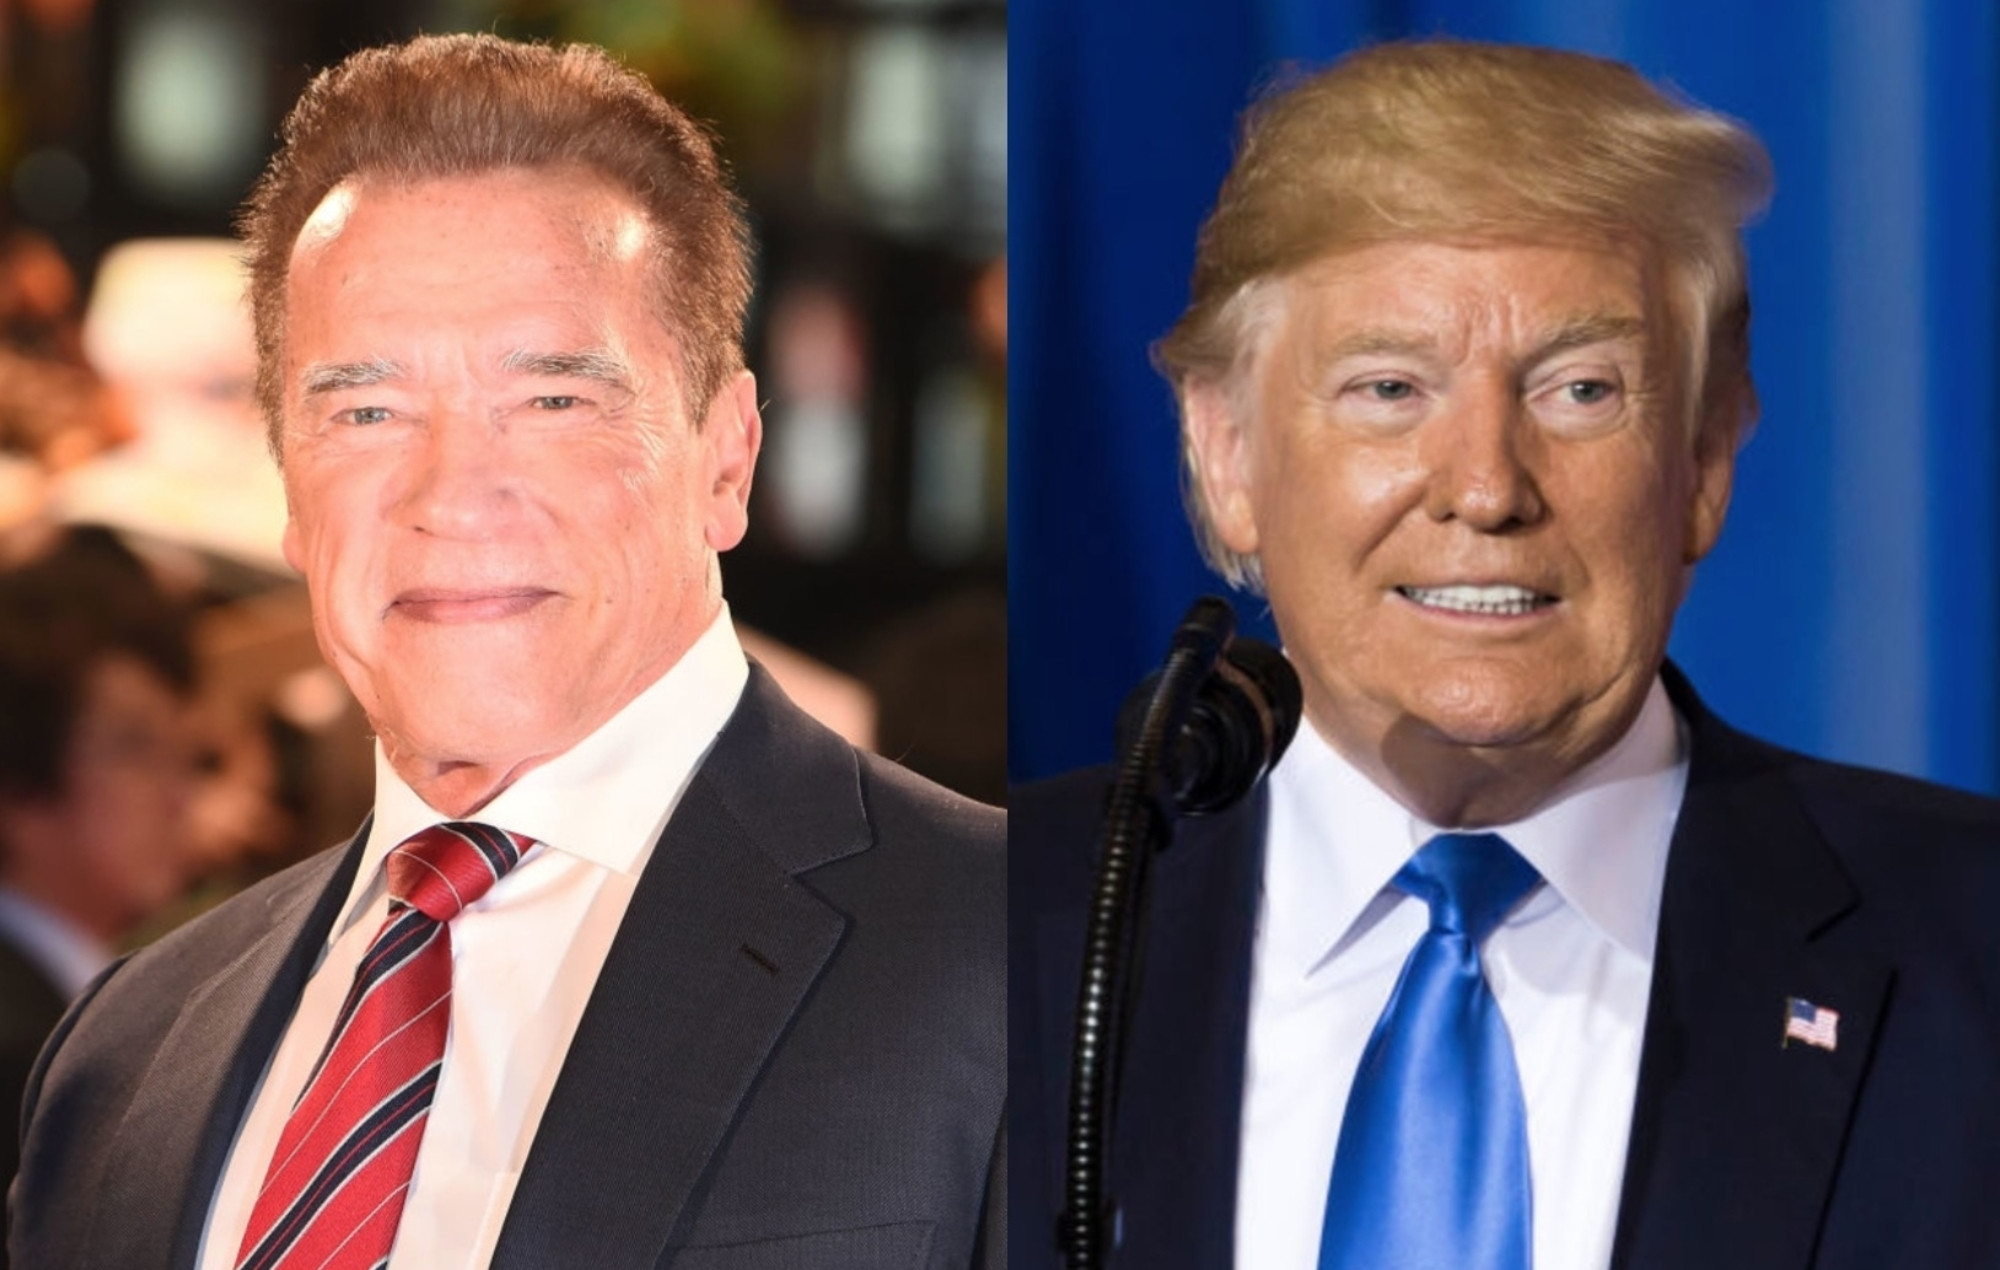 Trump will be remembered as worst president in history- Arnold Schwarzenegger says as he rebukes the US President and compares Capitol riot to Kristallnacht (video)